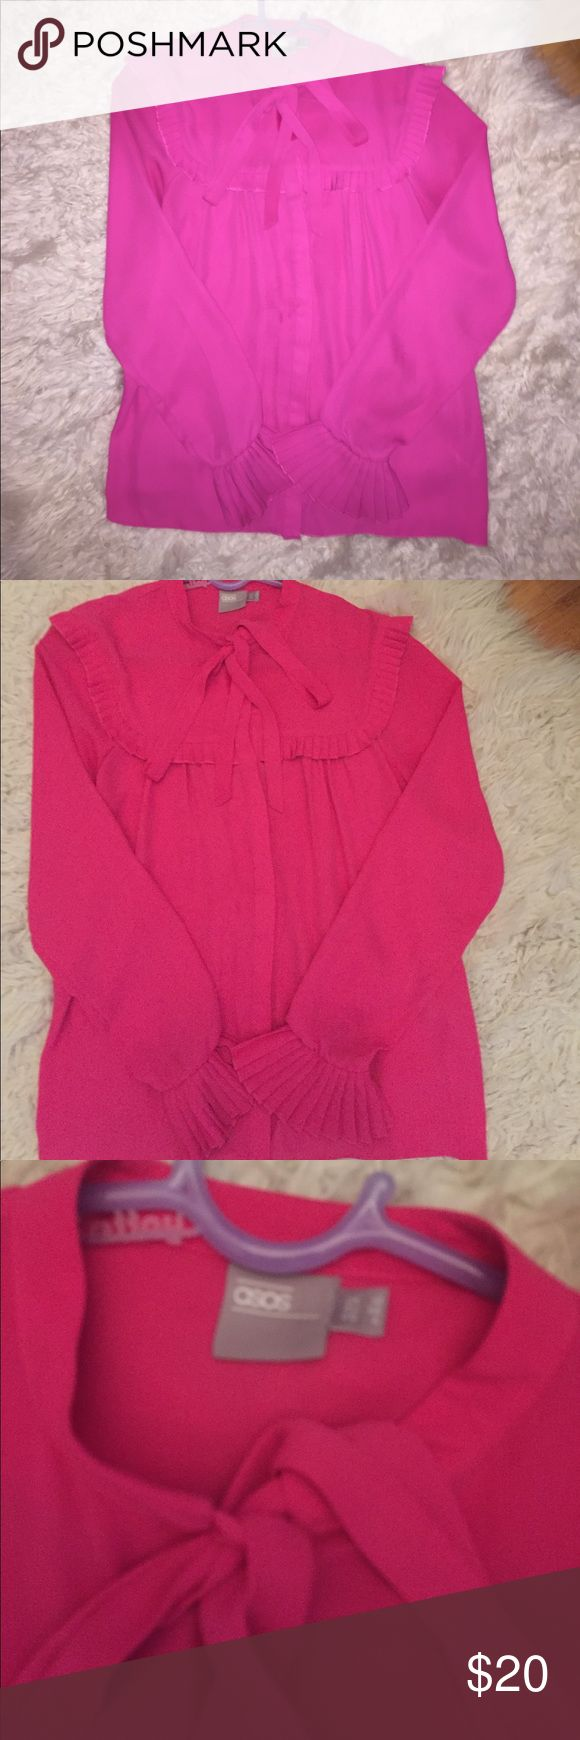 ASOS hot pink blouse with frills and bow ASOS blouse with bow at top and beautiful sleeves with elastic at bottom to hold frills! ASOS Tops Blouses